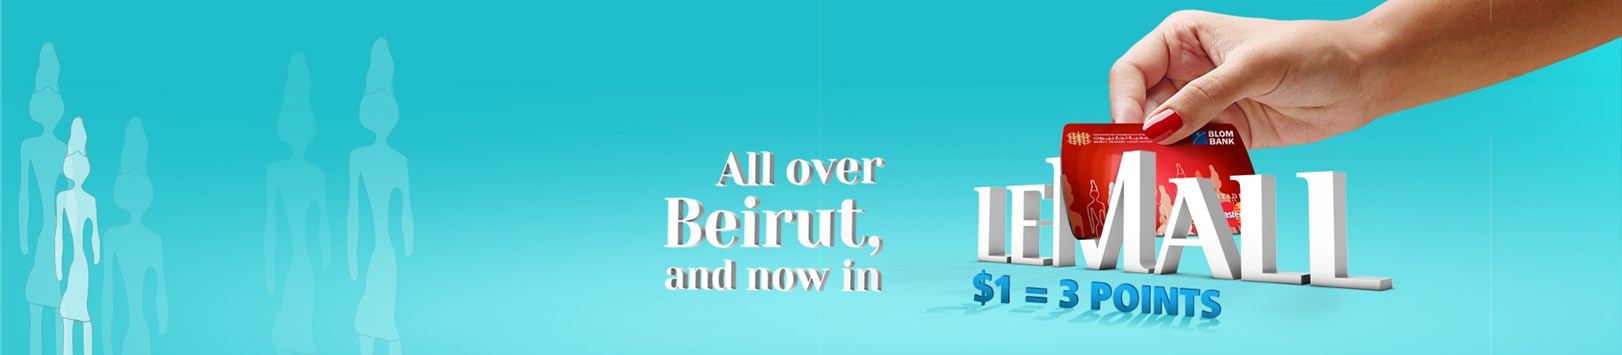 Beirut Traders Shopping Card Loyalty Program